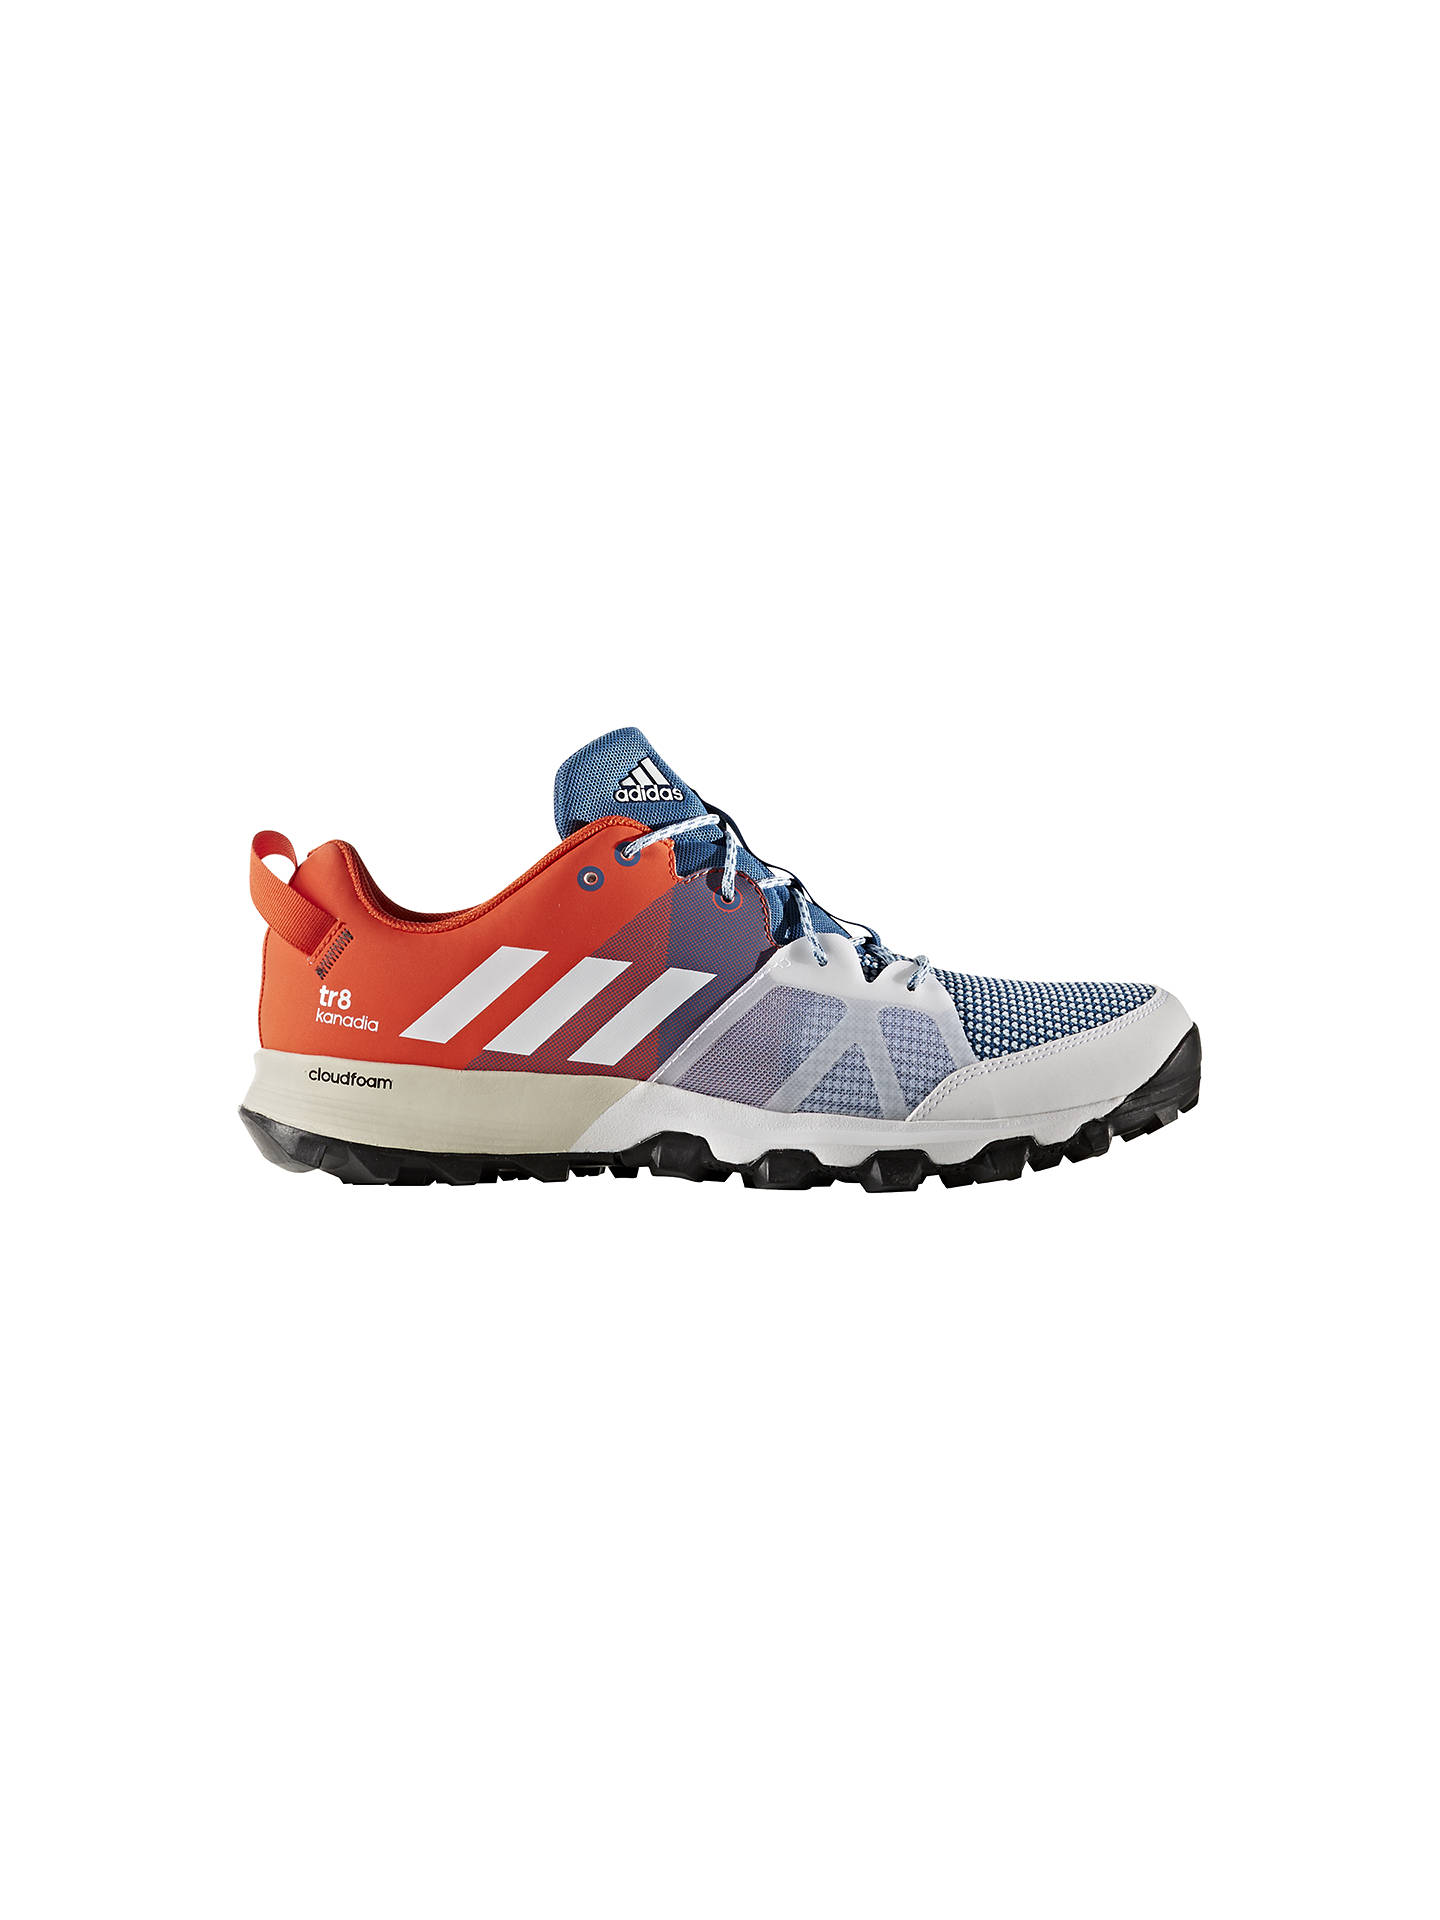 Adidas Kanadia 8 Trail Men s Running Shoes at John Lewis   Partners 0fdd64346d5